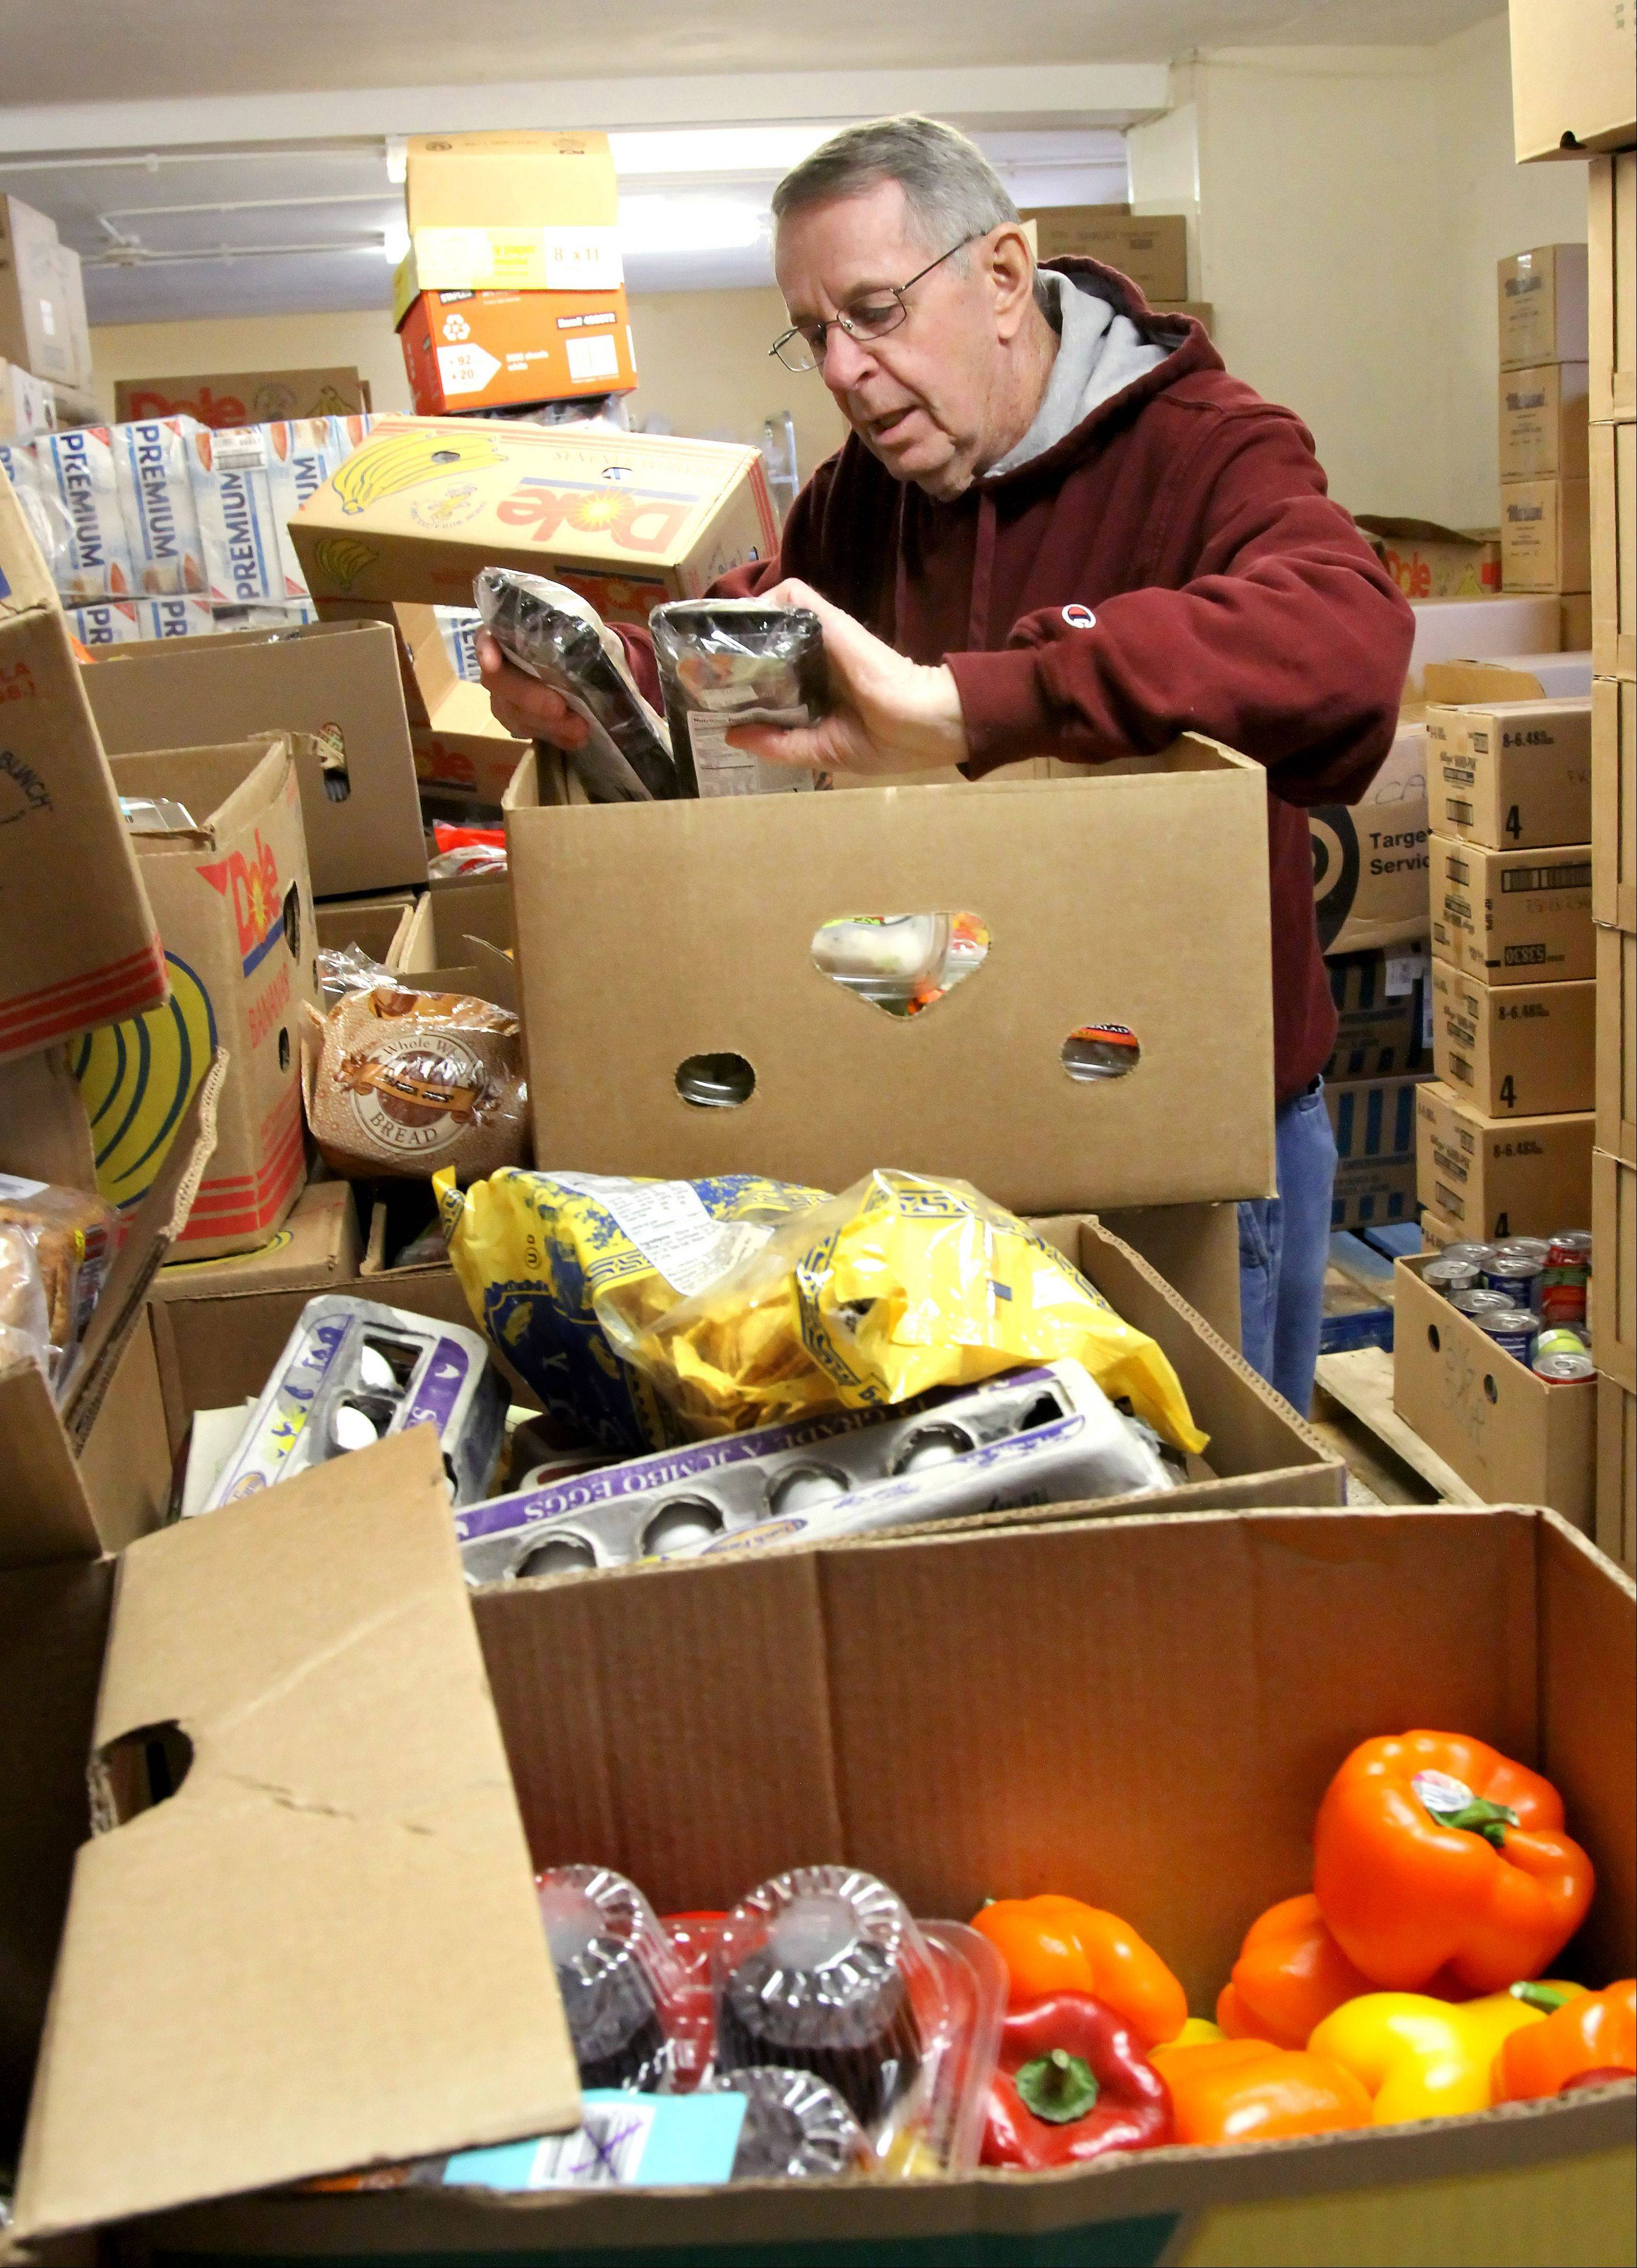 Don McGowan sorts through food that arrived at the People's Resource Center in Wheaton.